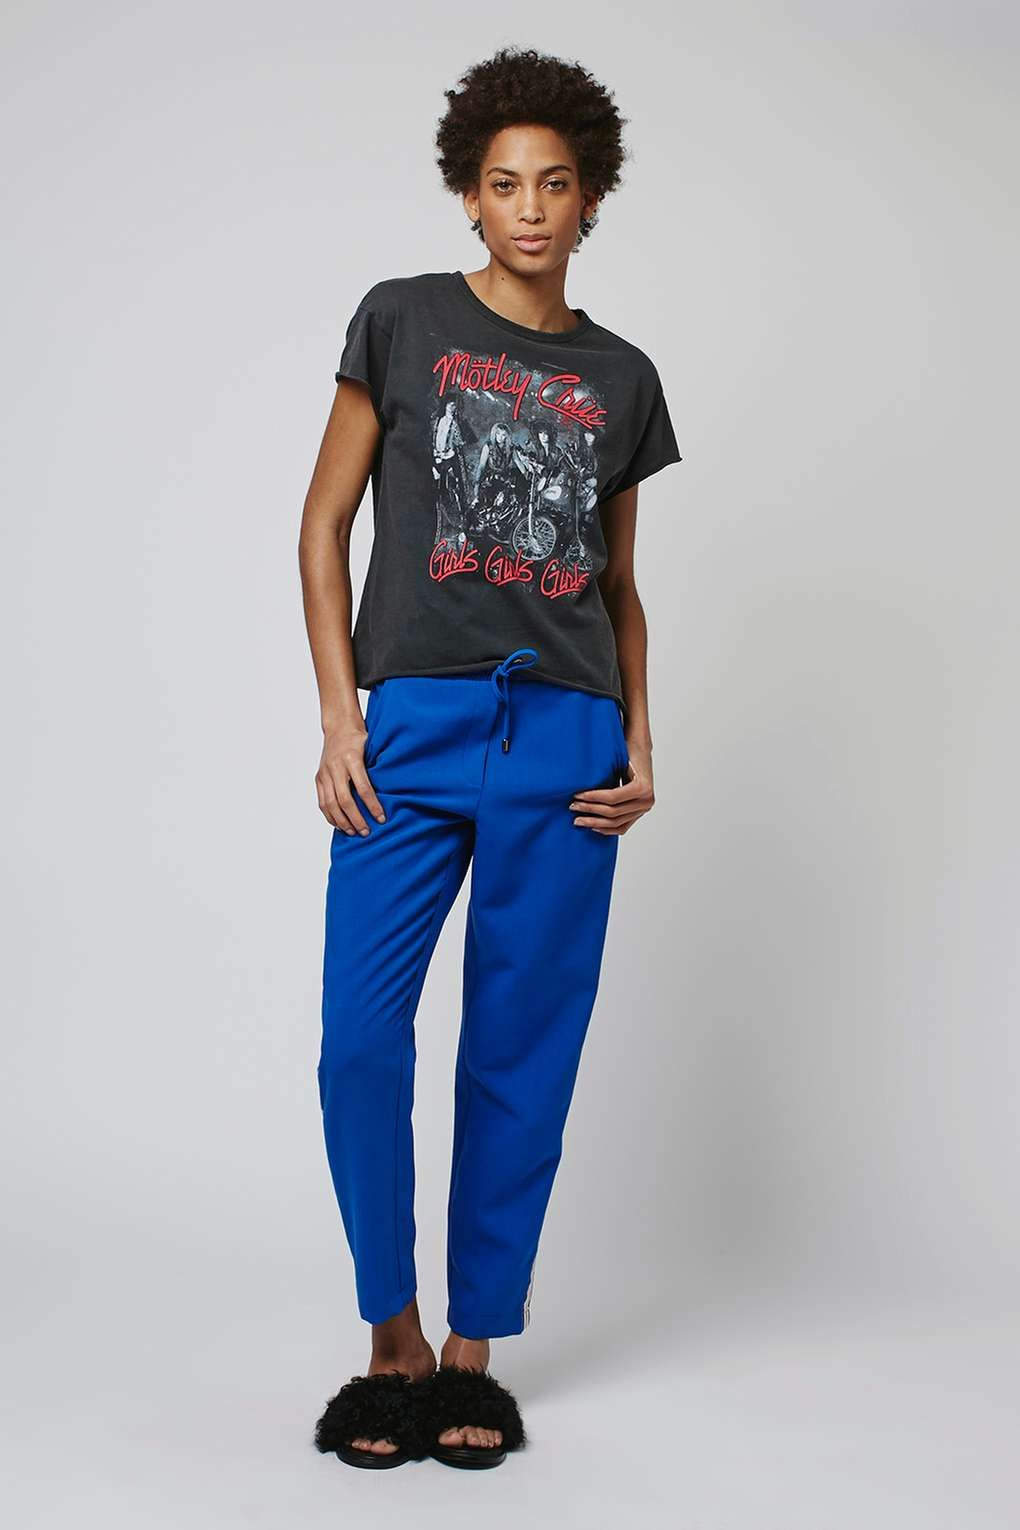 Motley Cru Tee by And Finally